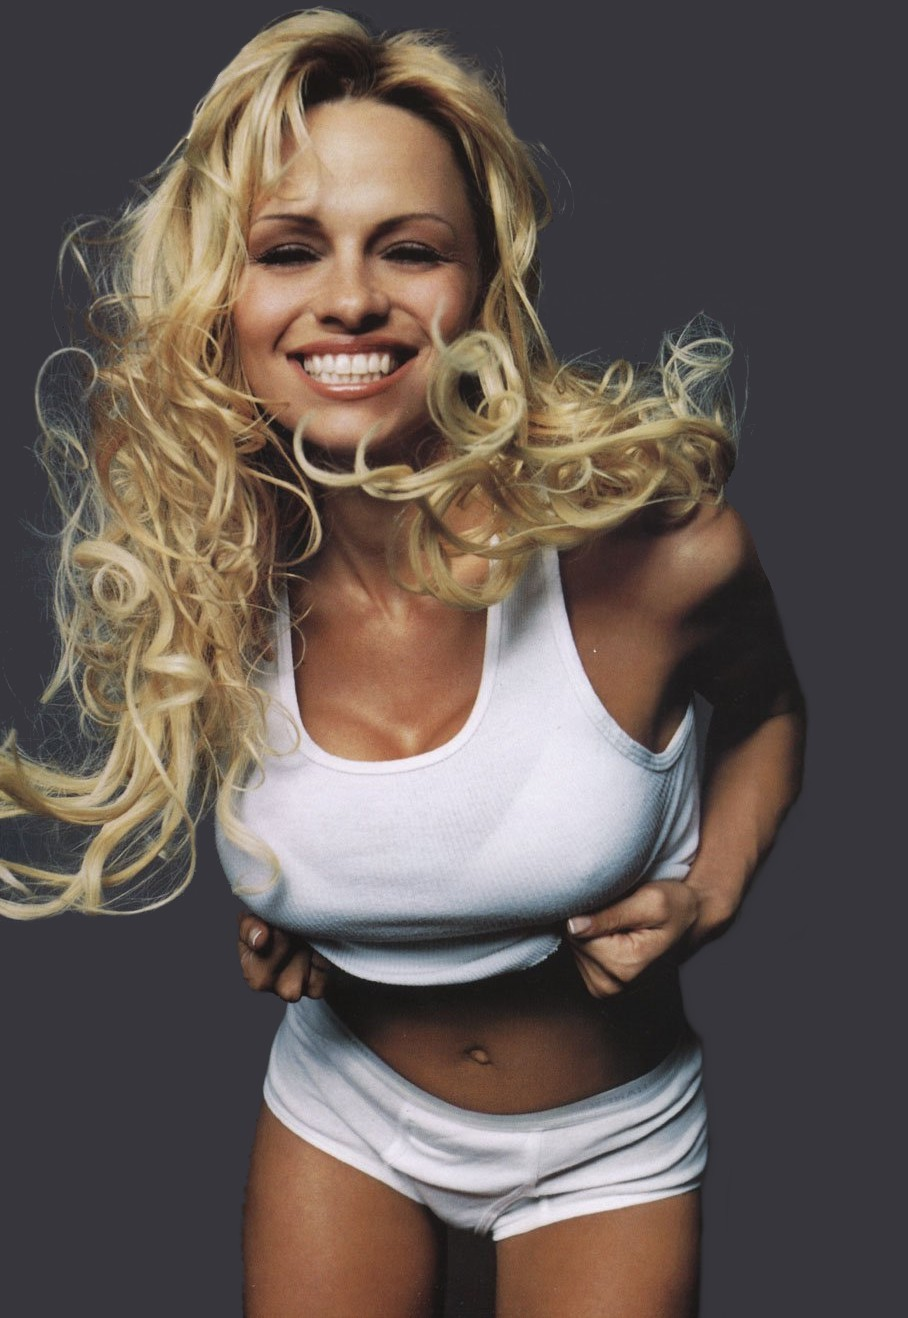 Amazing Photo of Pamela Anderson #59365. Image size: 908 х 1318. Number of  908 x 1318 · 182 kB · jpeg